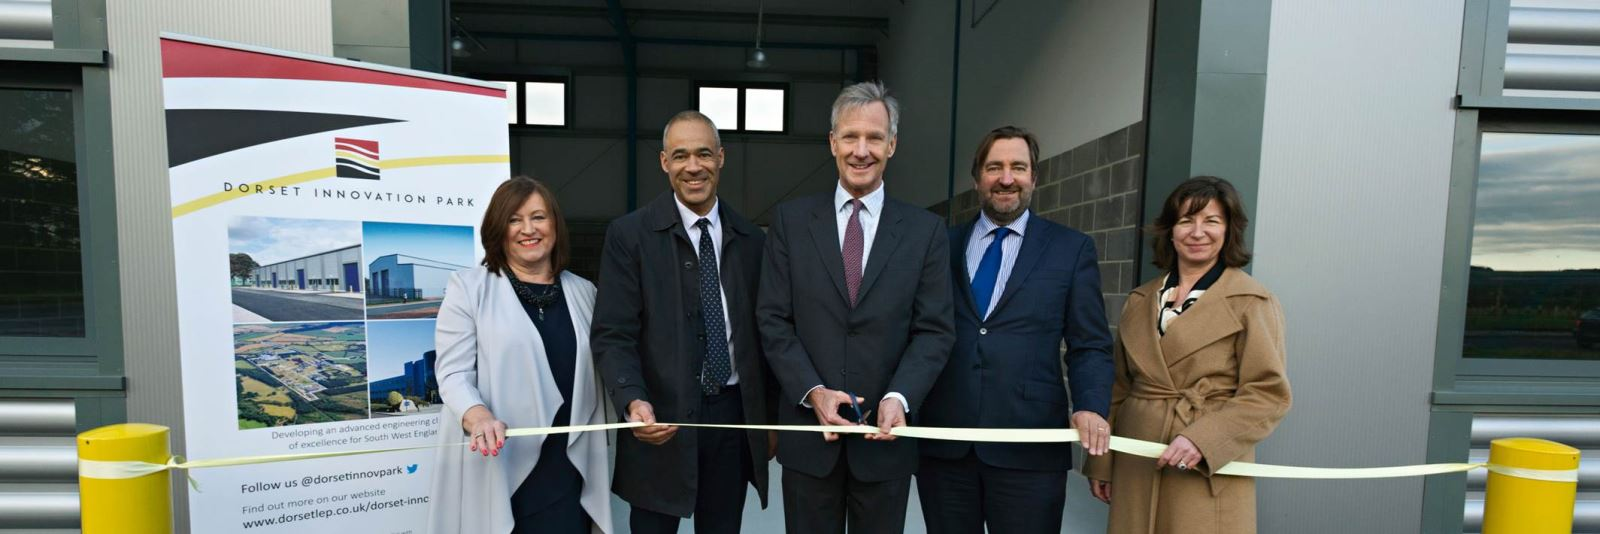 Dorset Innovation Park opens